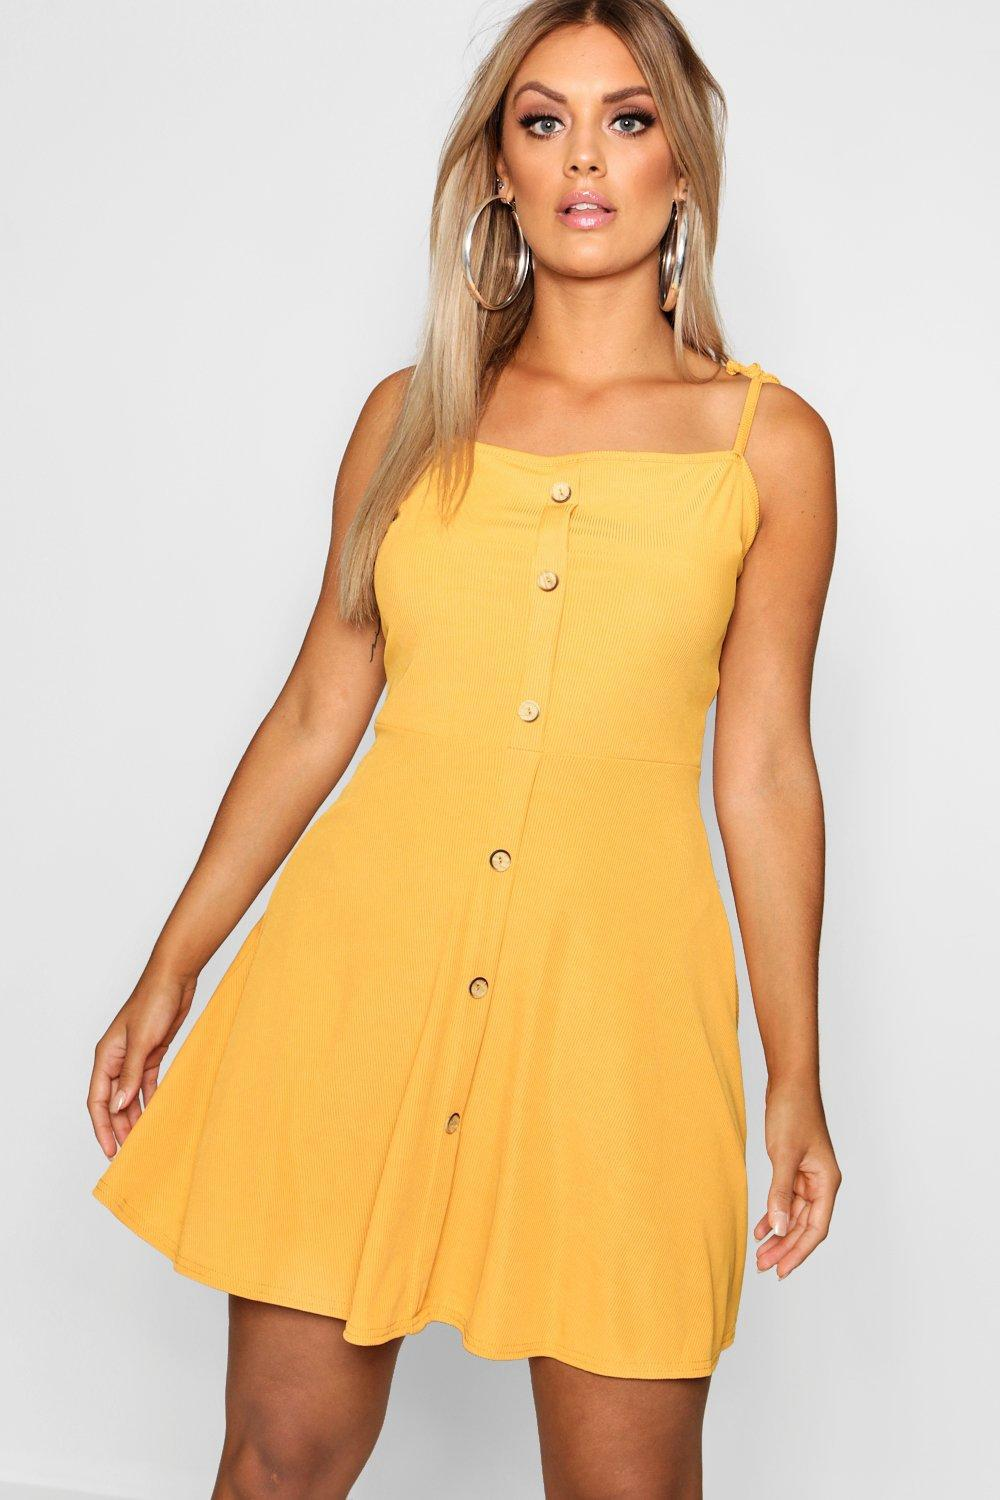 70d2841add Boohoo Plus Button Down Tie Strap Skater Dress in Yellow - Lyst